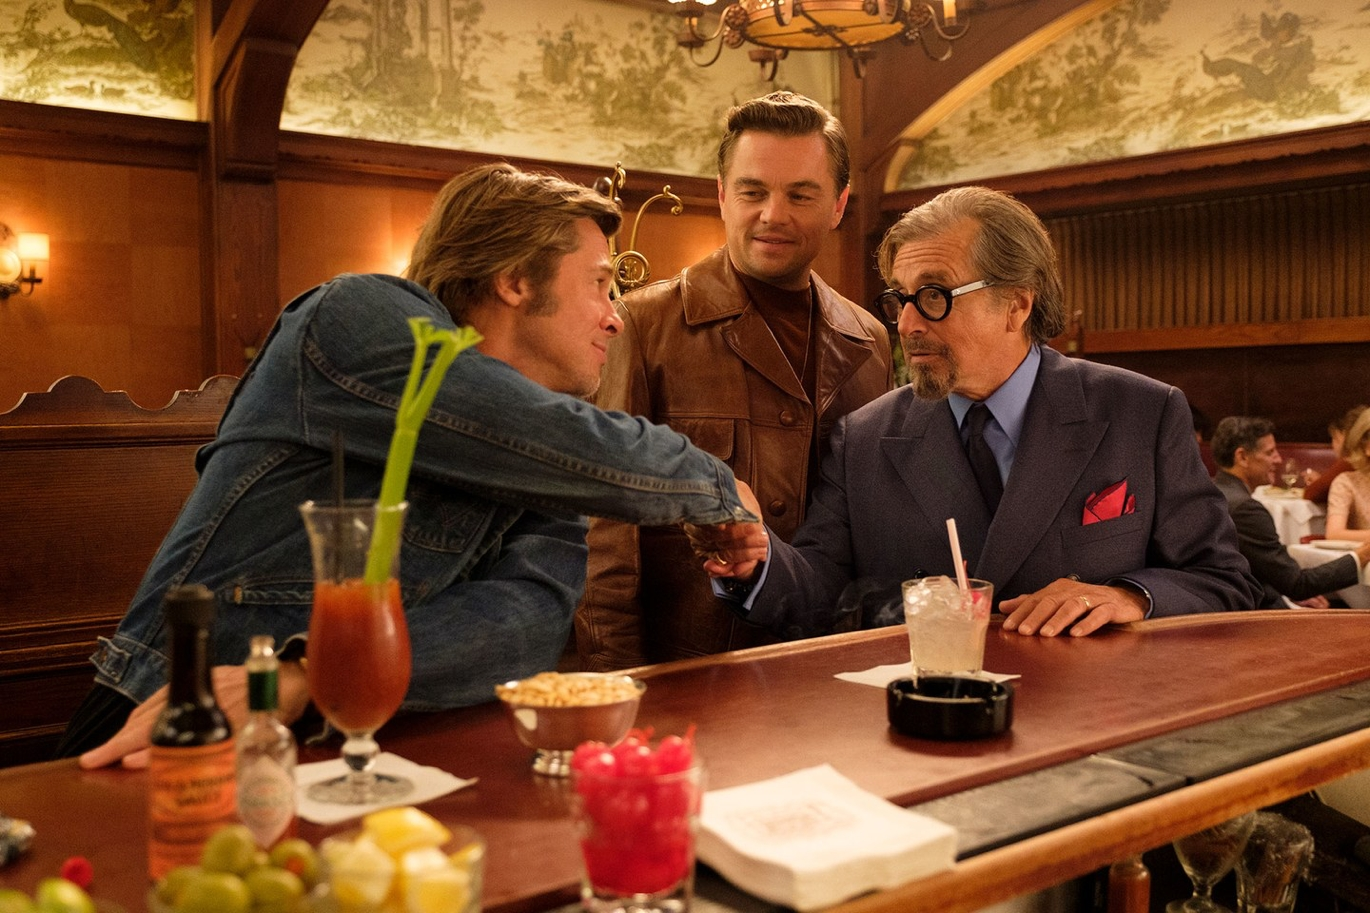 Leonardo DiCaprio and Bradd Pitt in Quentin Tarantino's Once Upon a Time in Hollywood movie